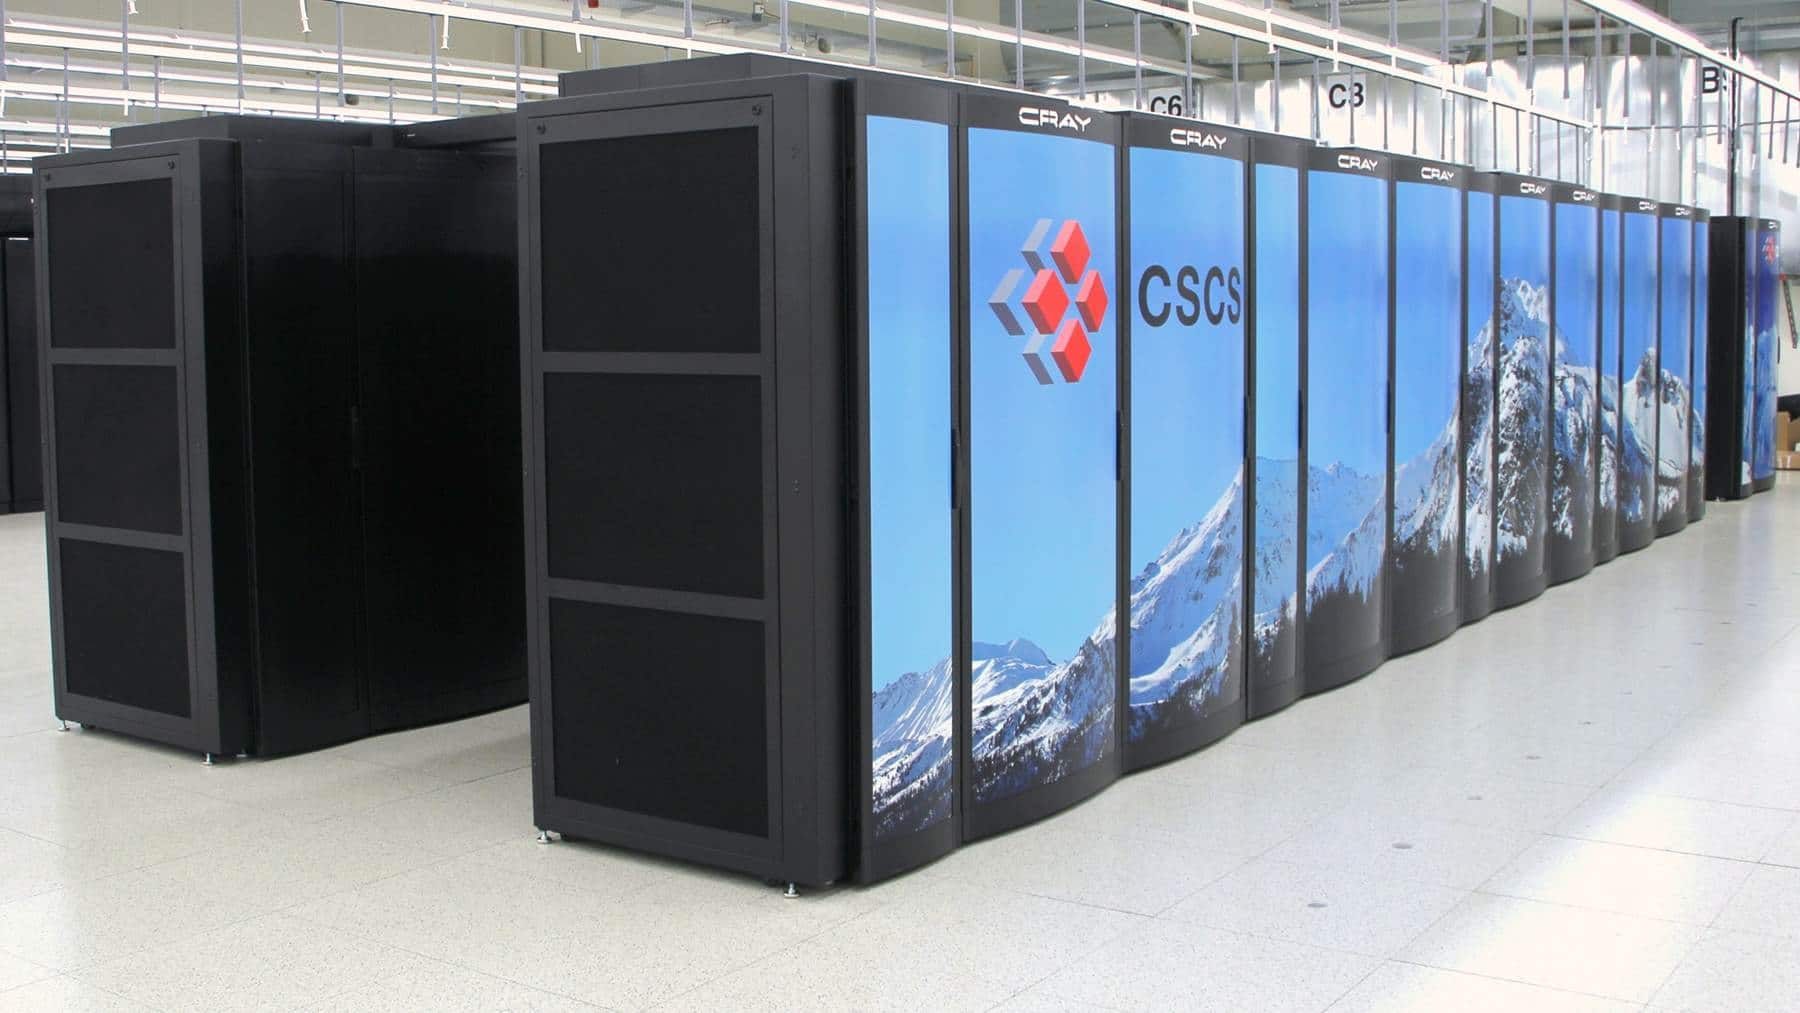 Swiss National Supercomputing Center Piz Daint supercomputer